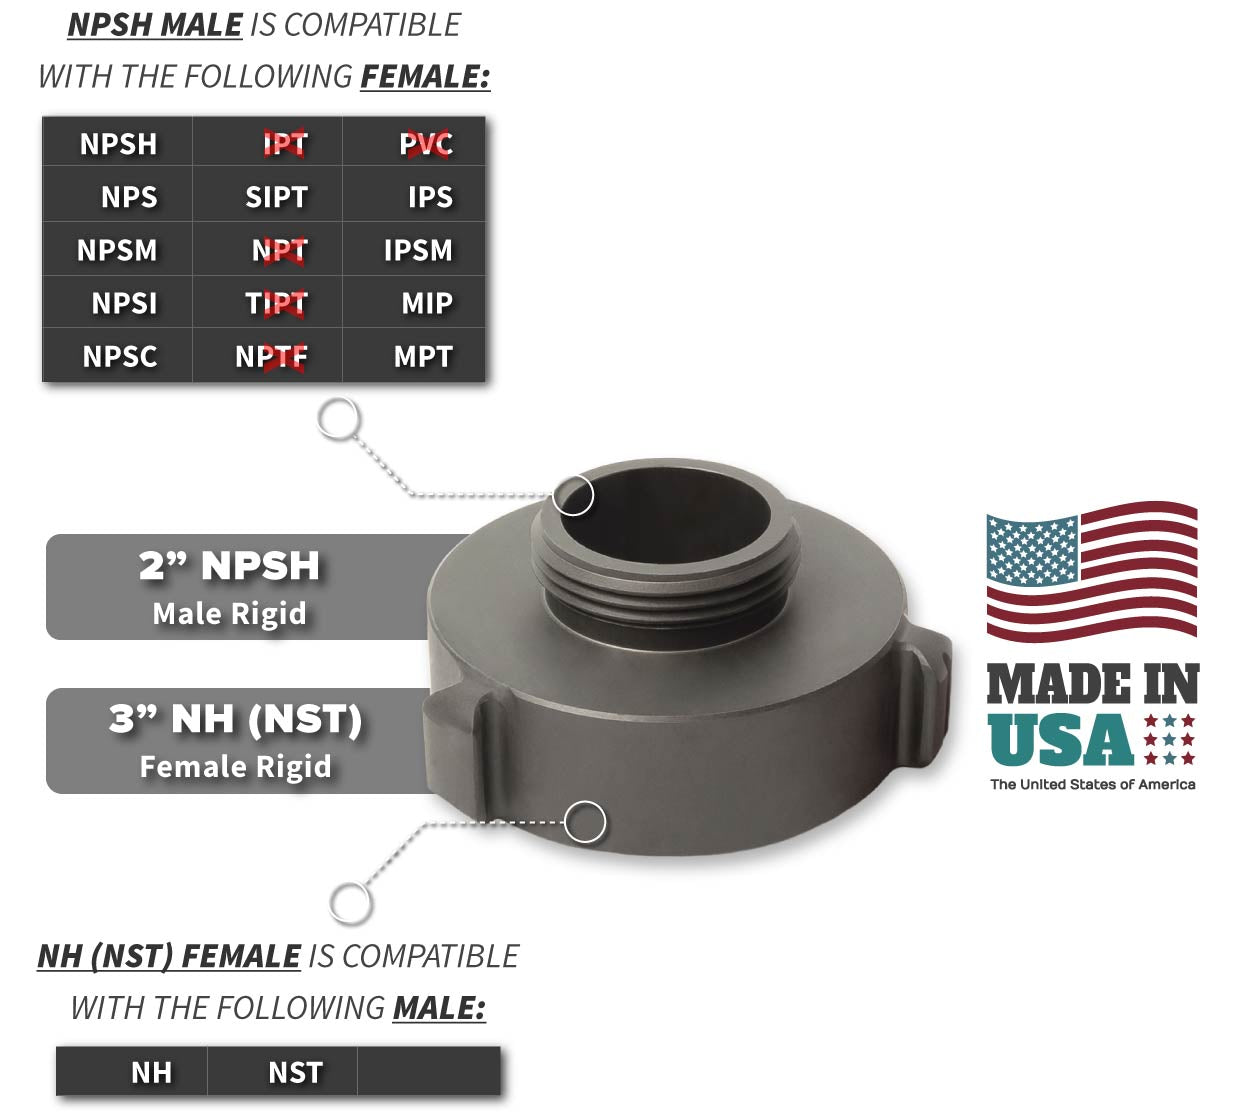 3 Inch NH-NST Female x 2 Inch NPSH Male Compatibility Thread Chart